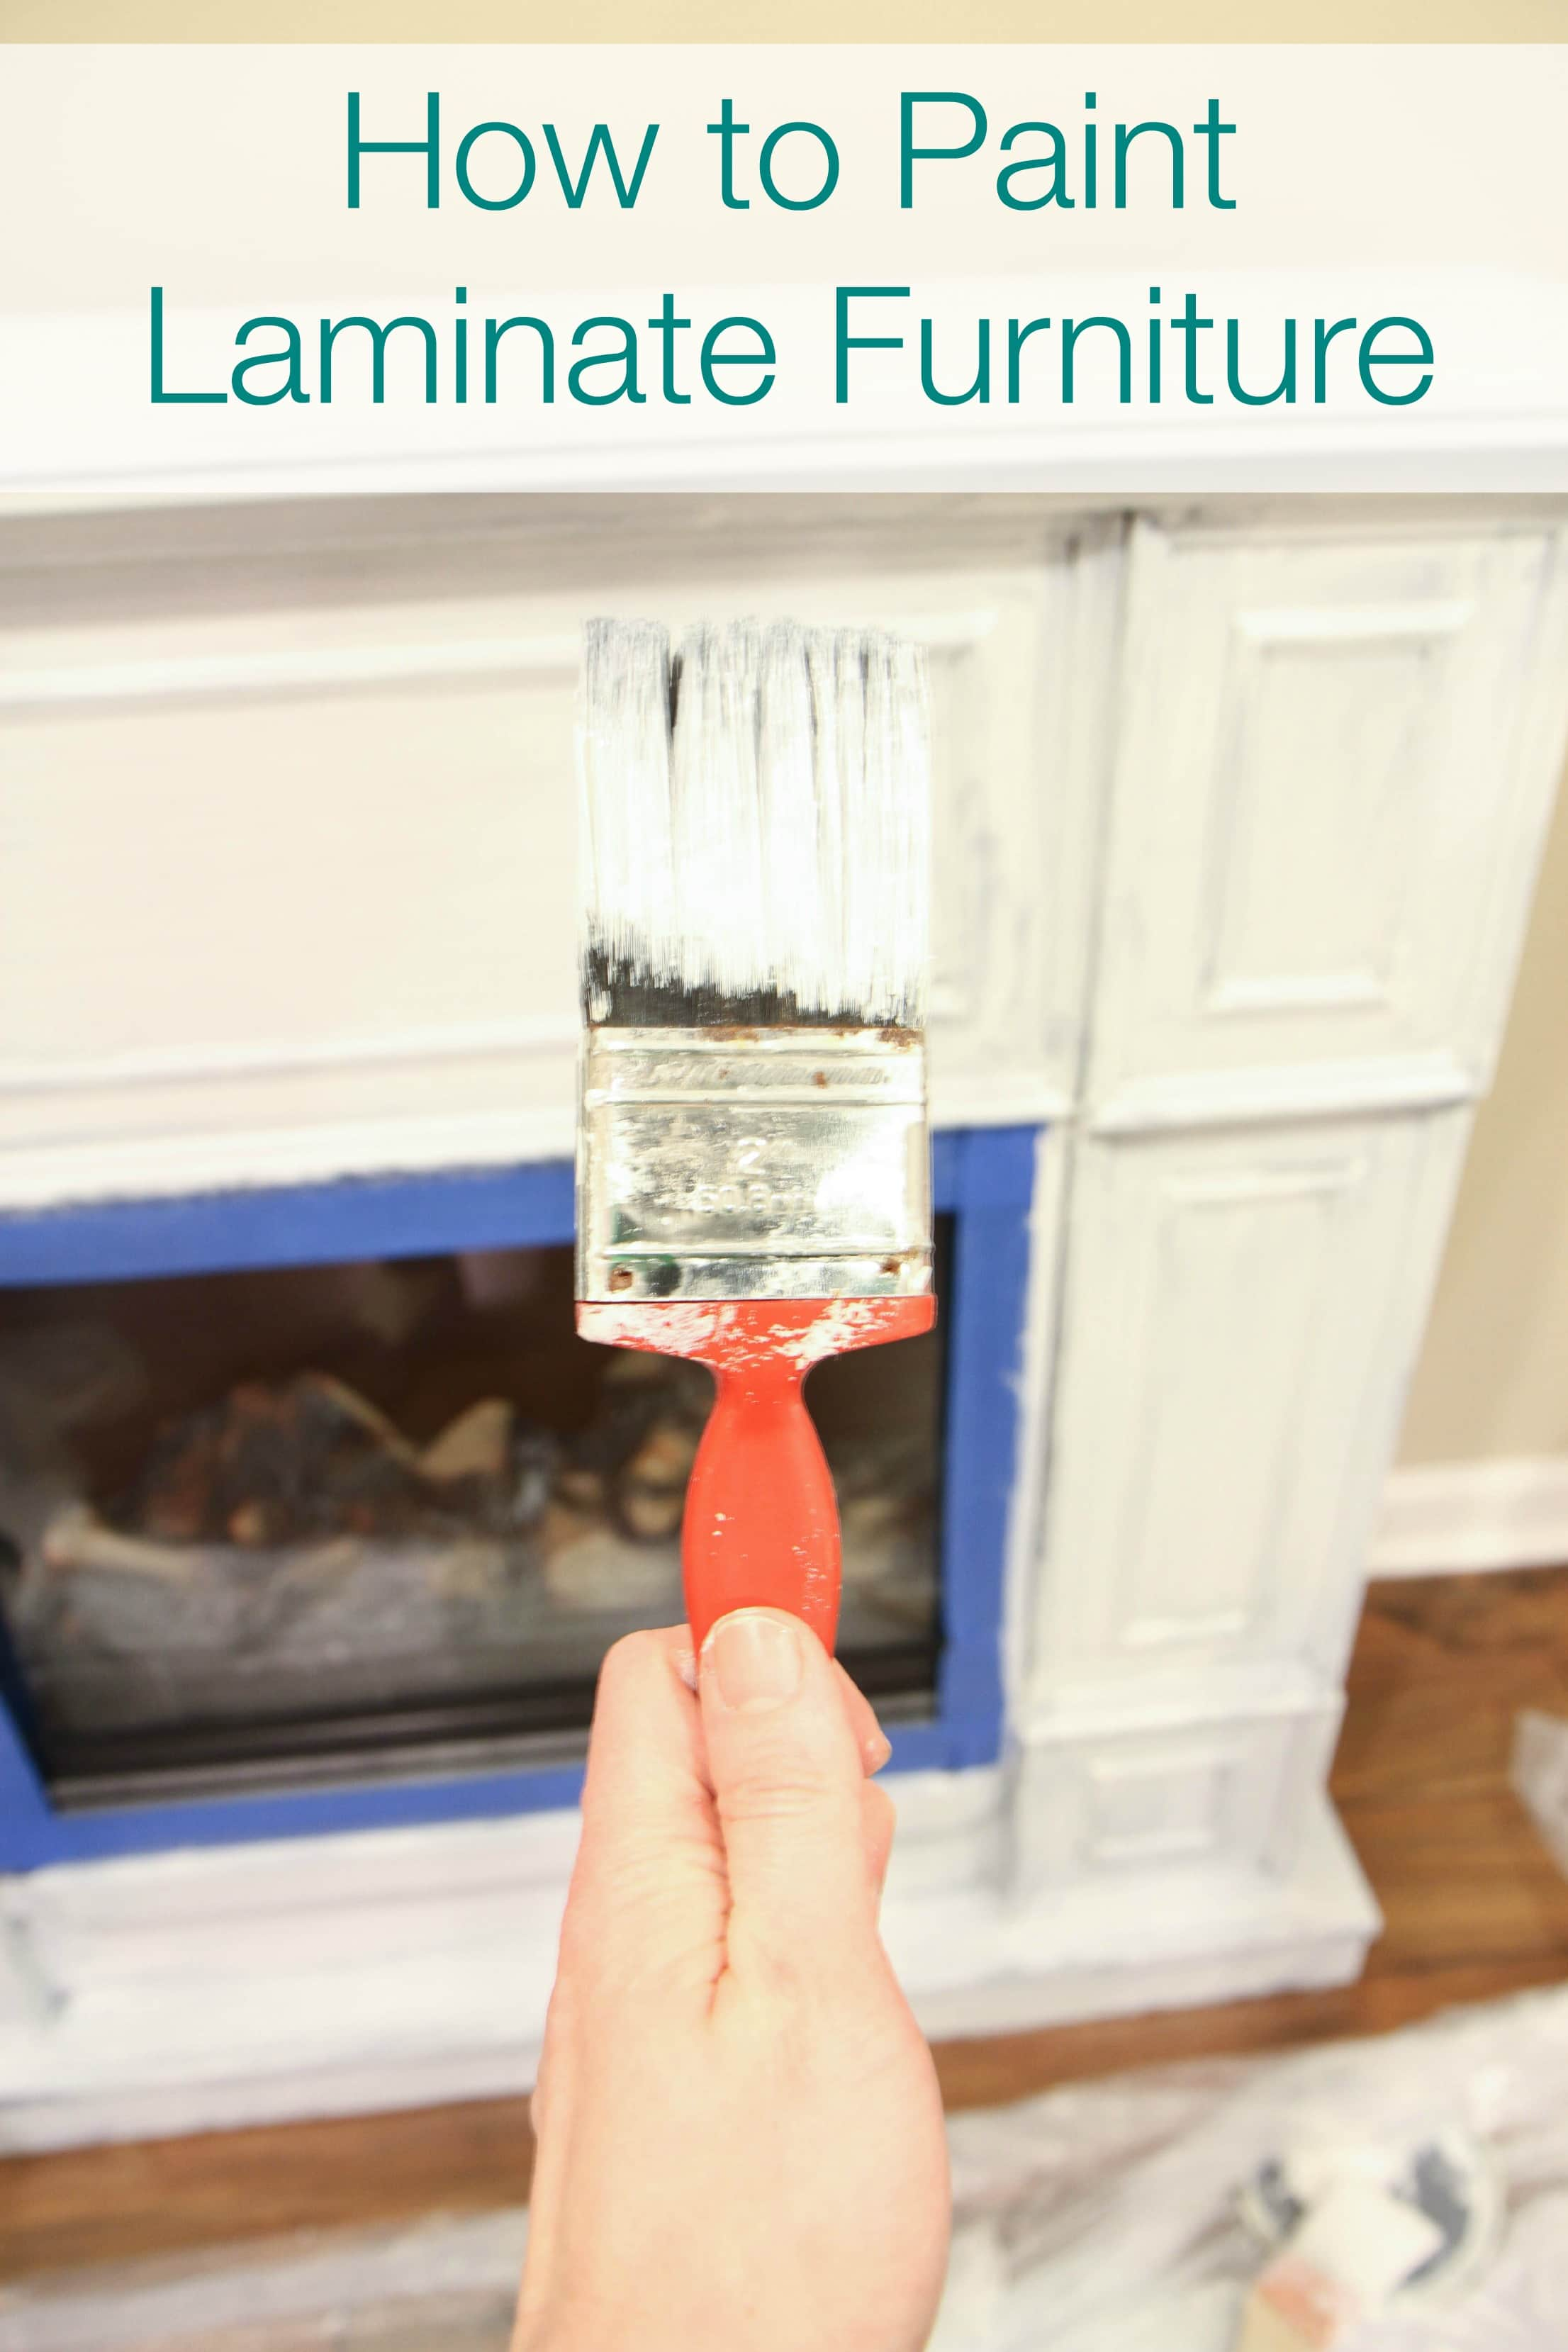 How to Paint Laminate Furniture from MomAdvice.com